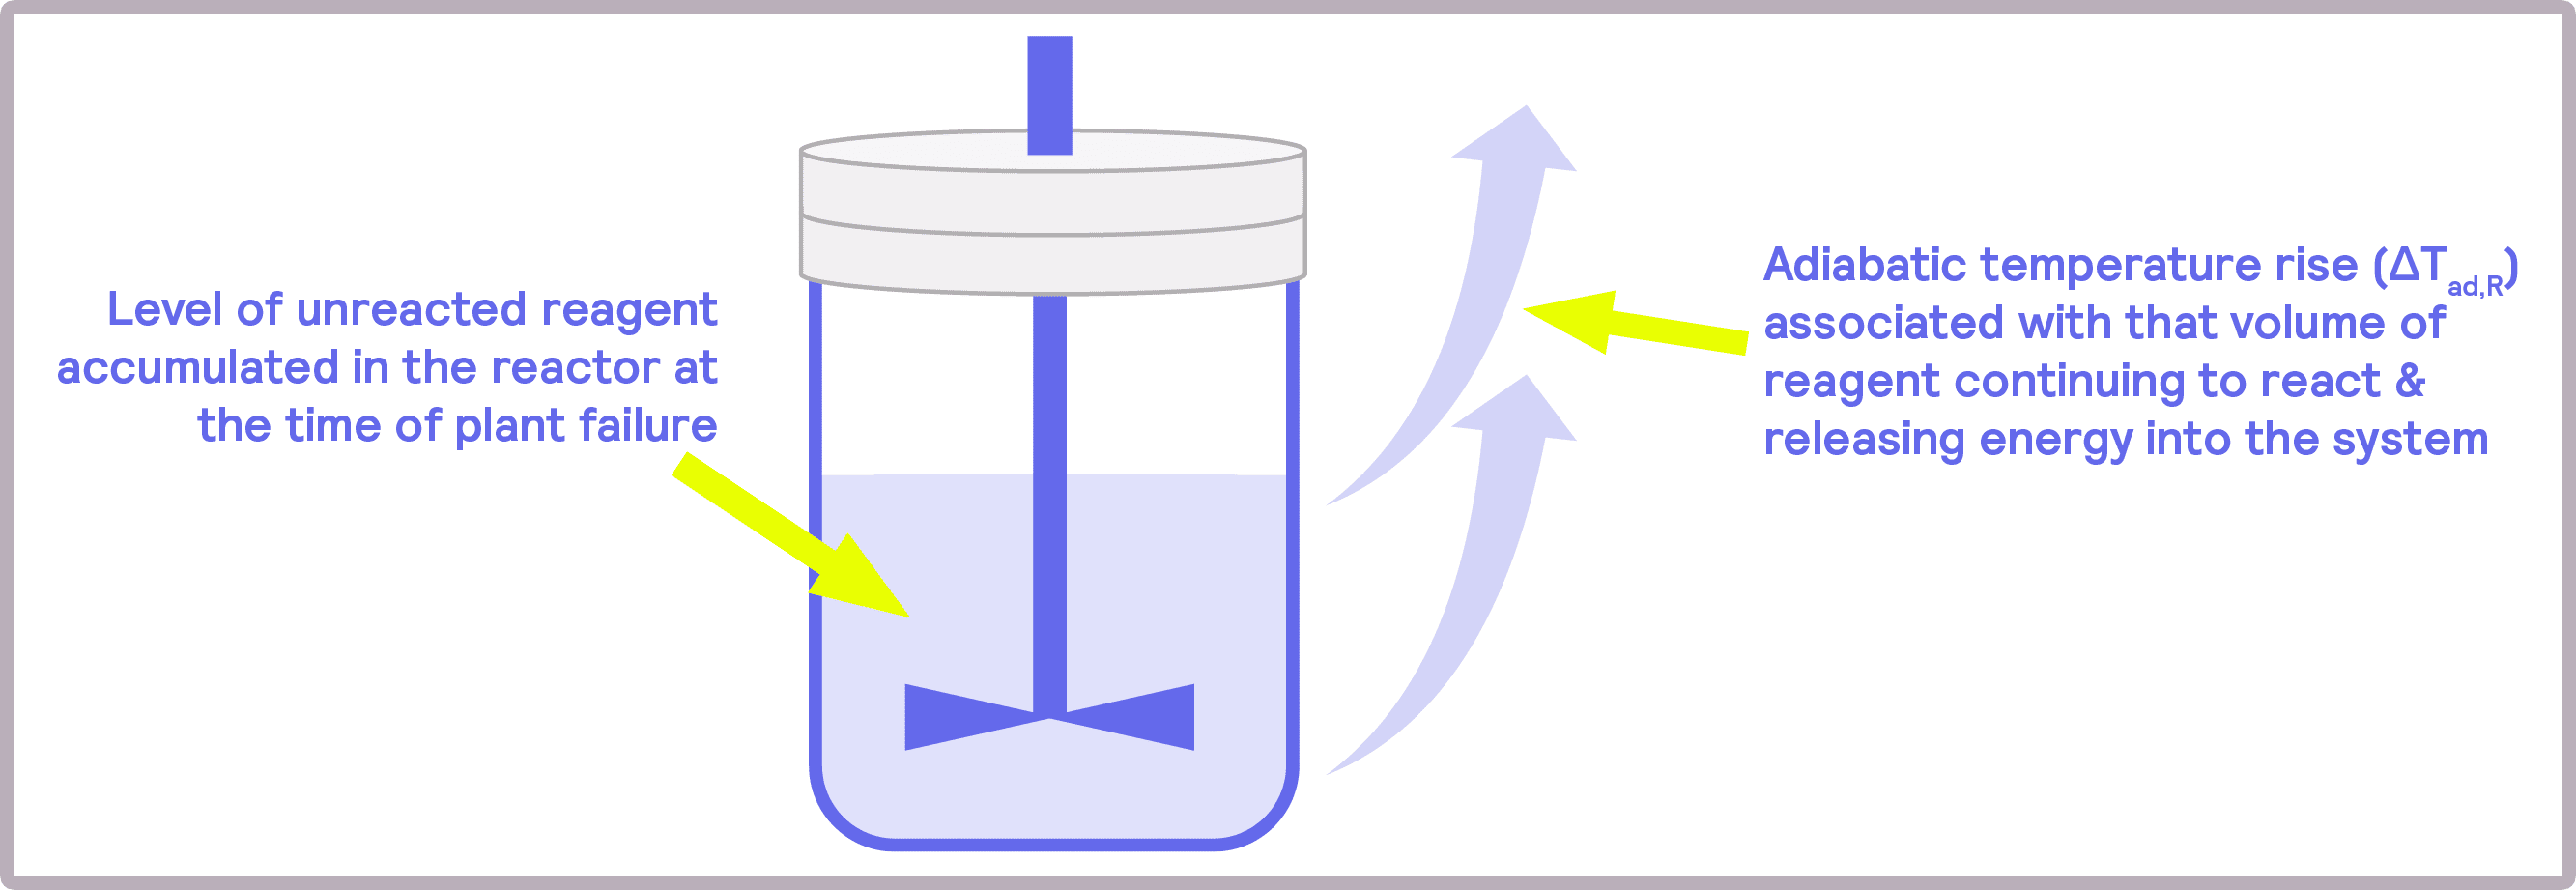 Figure 7: The risk of accumulated reagent